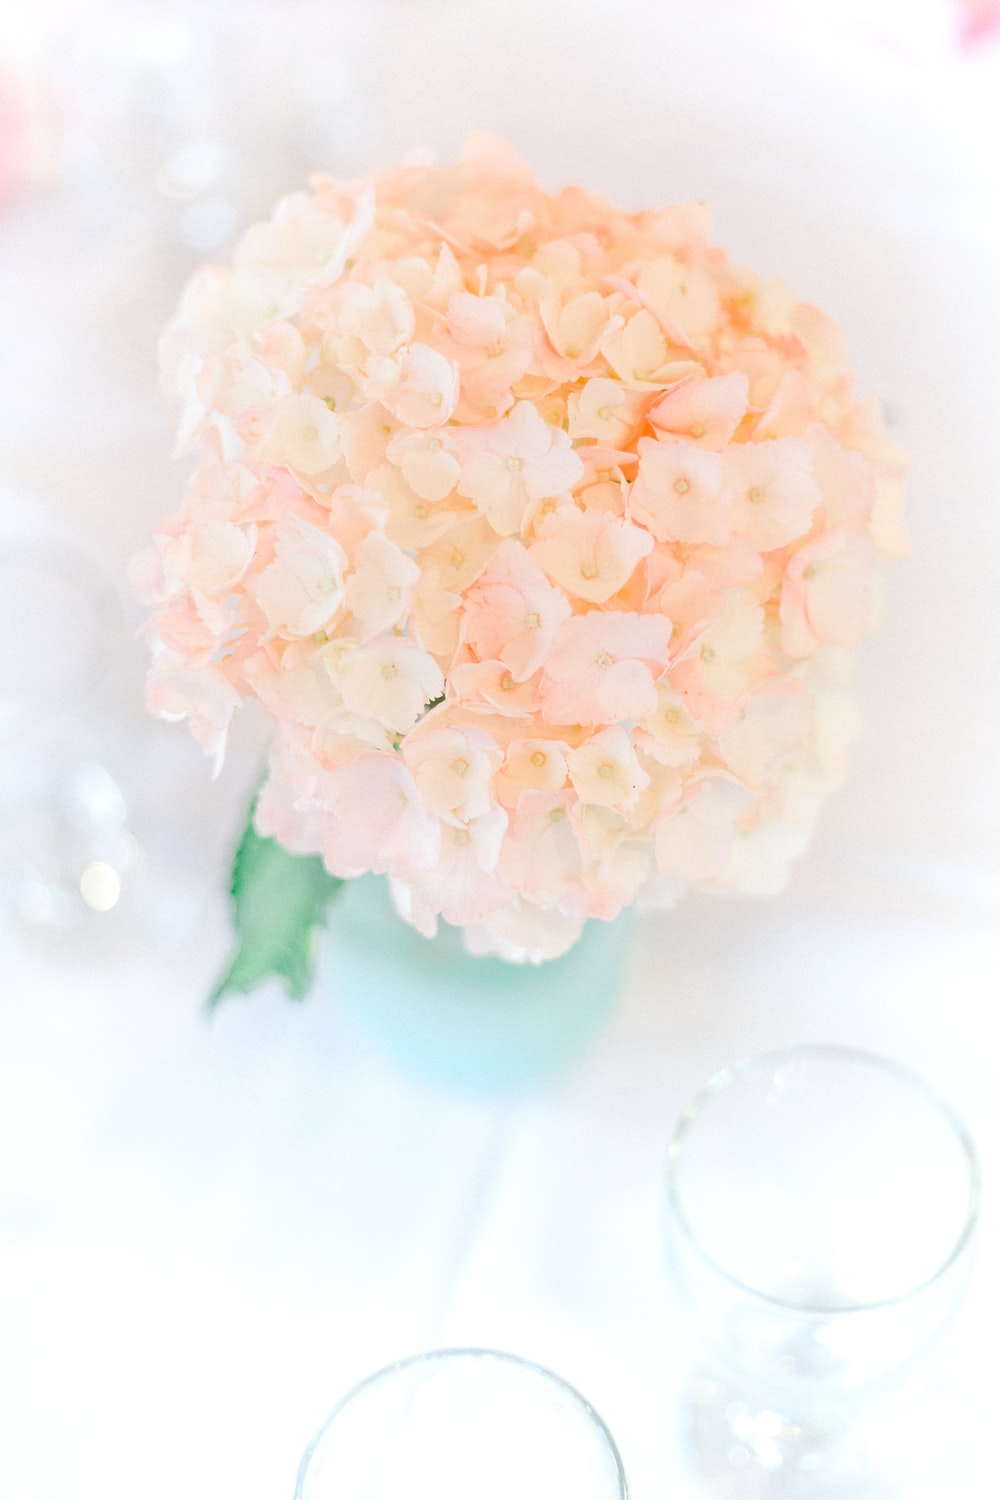 white cluster flower in close up photography